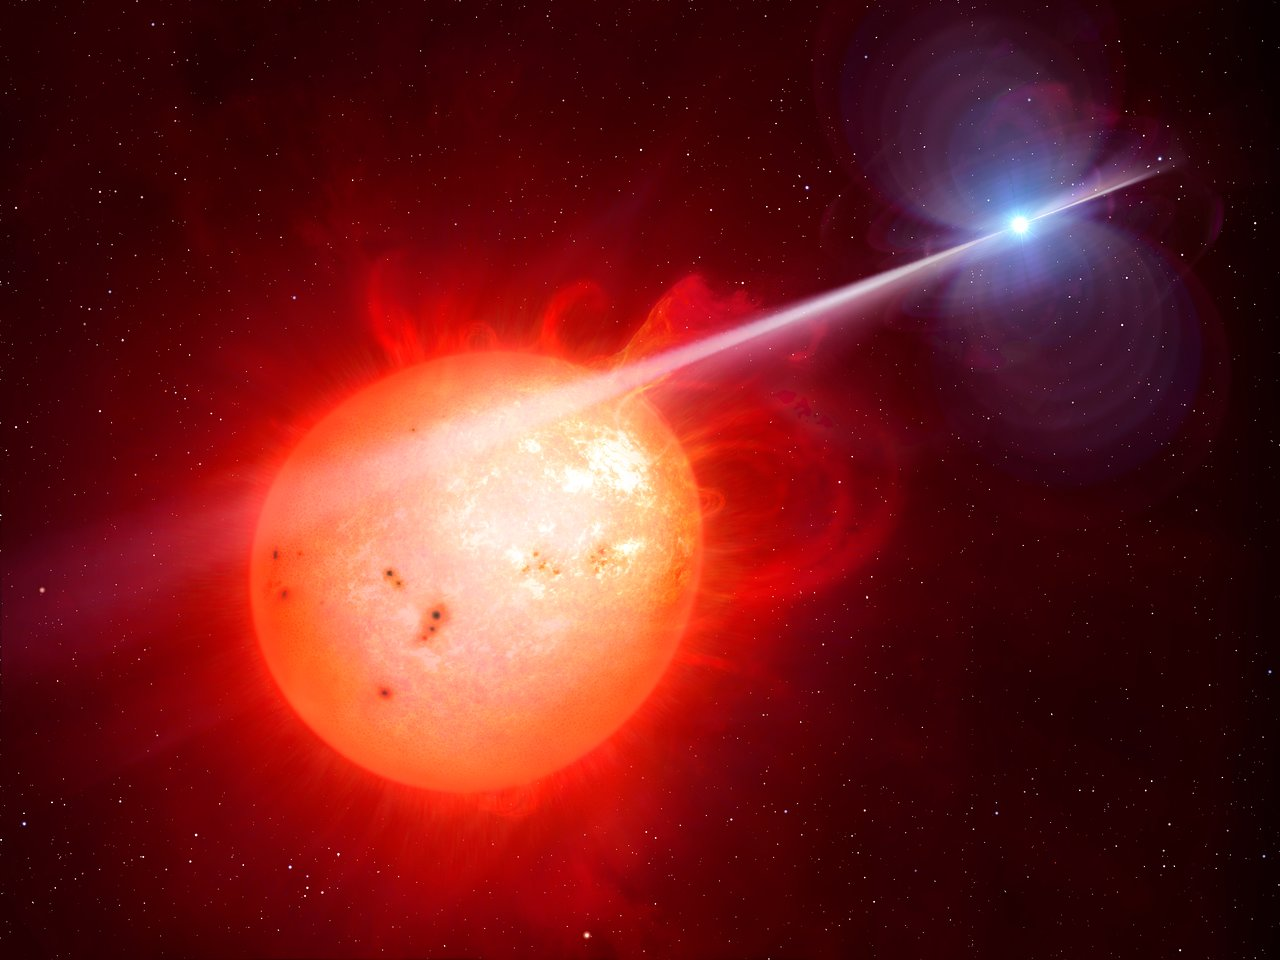 This artist's impression shows the strange object AR Scorpii. In this unique double star a rapidly spinning white dwarf star (right) powers electrons up to almost the speed of light. These high energy particles release blasts of radiation that lash the companion red dwarf star (left) and cause the entire system to pulse dramatically every 1.97 minutes with radiation ranging from the ultraviolet to radio.